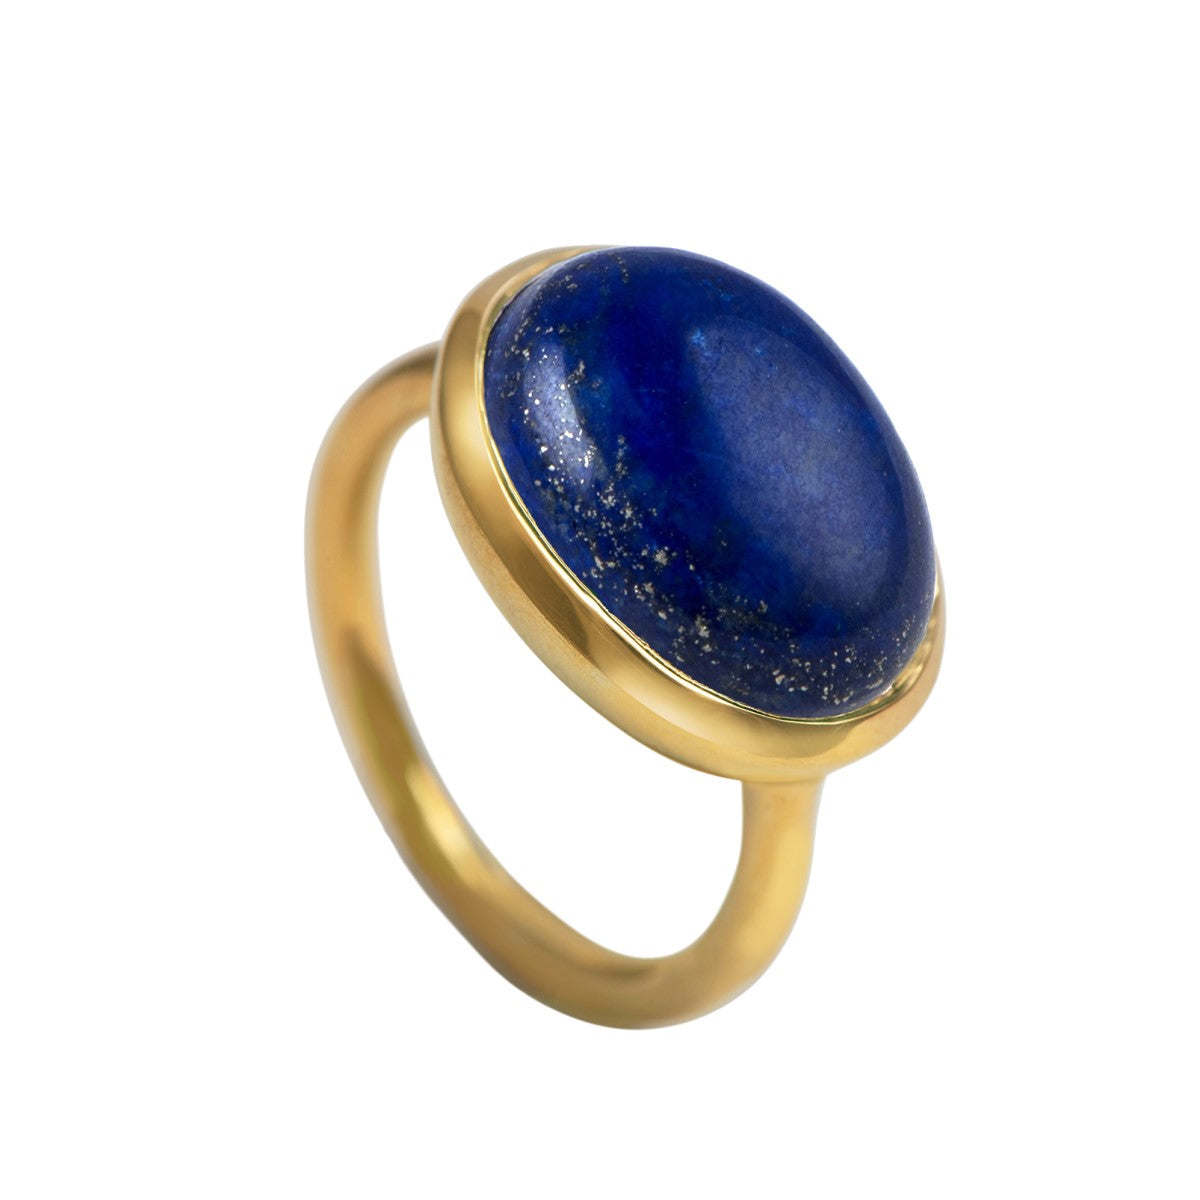 Cabochon Oval Cut Natural Gemstone Gold Plated Sterling Silver Ring - Lapis Lazuli